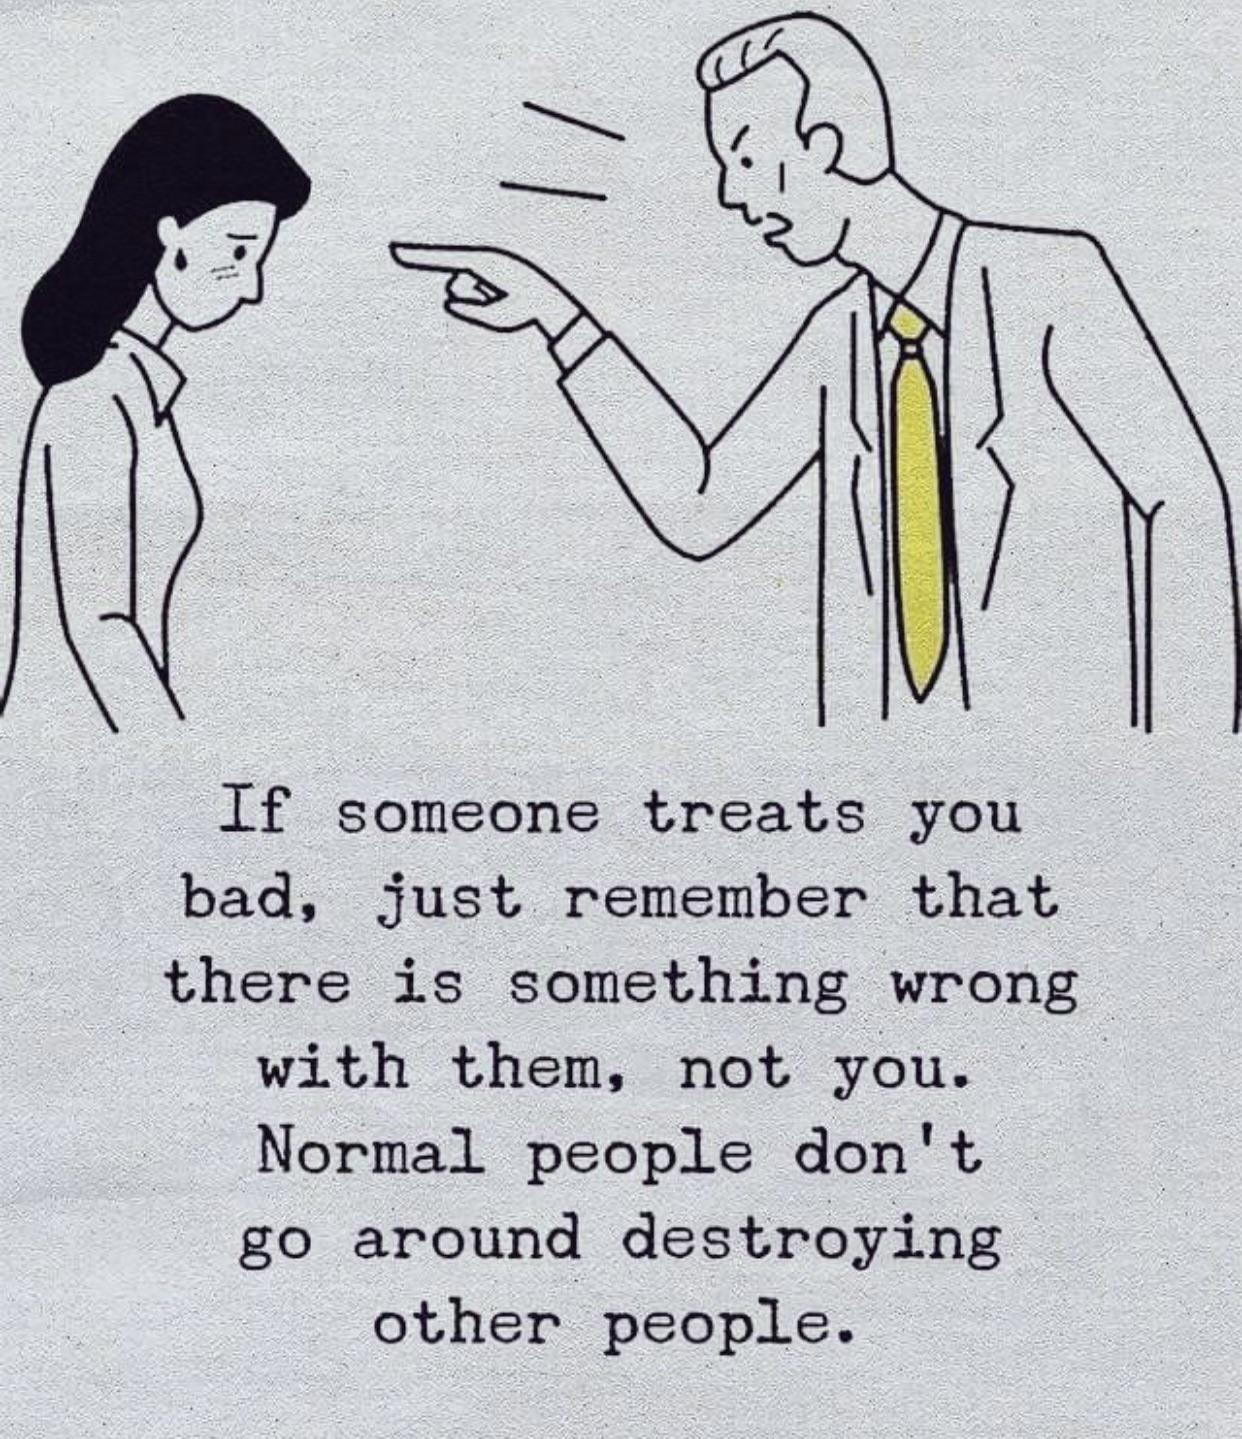 [Image] Normal people don't go around destroying other people.